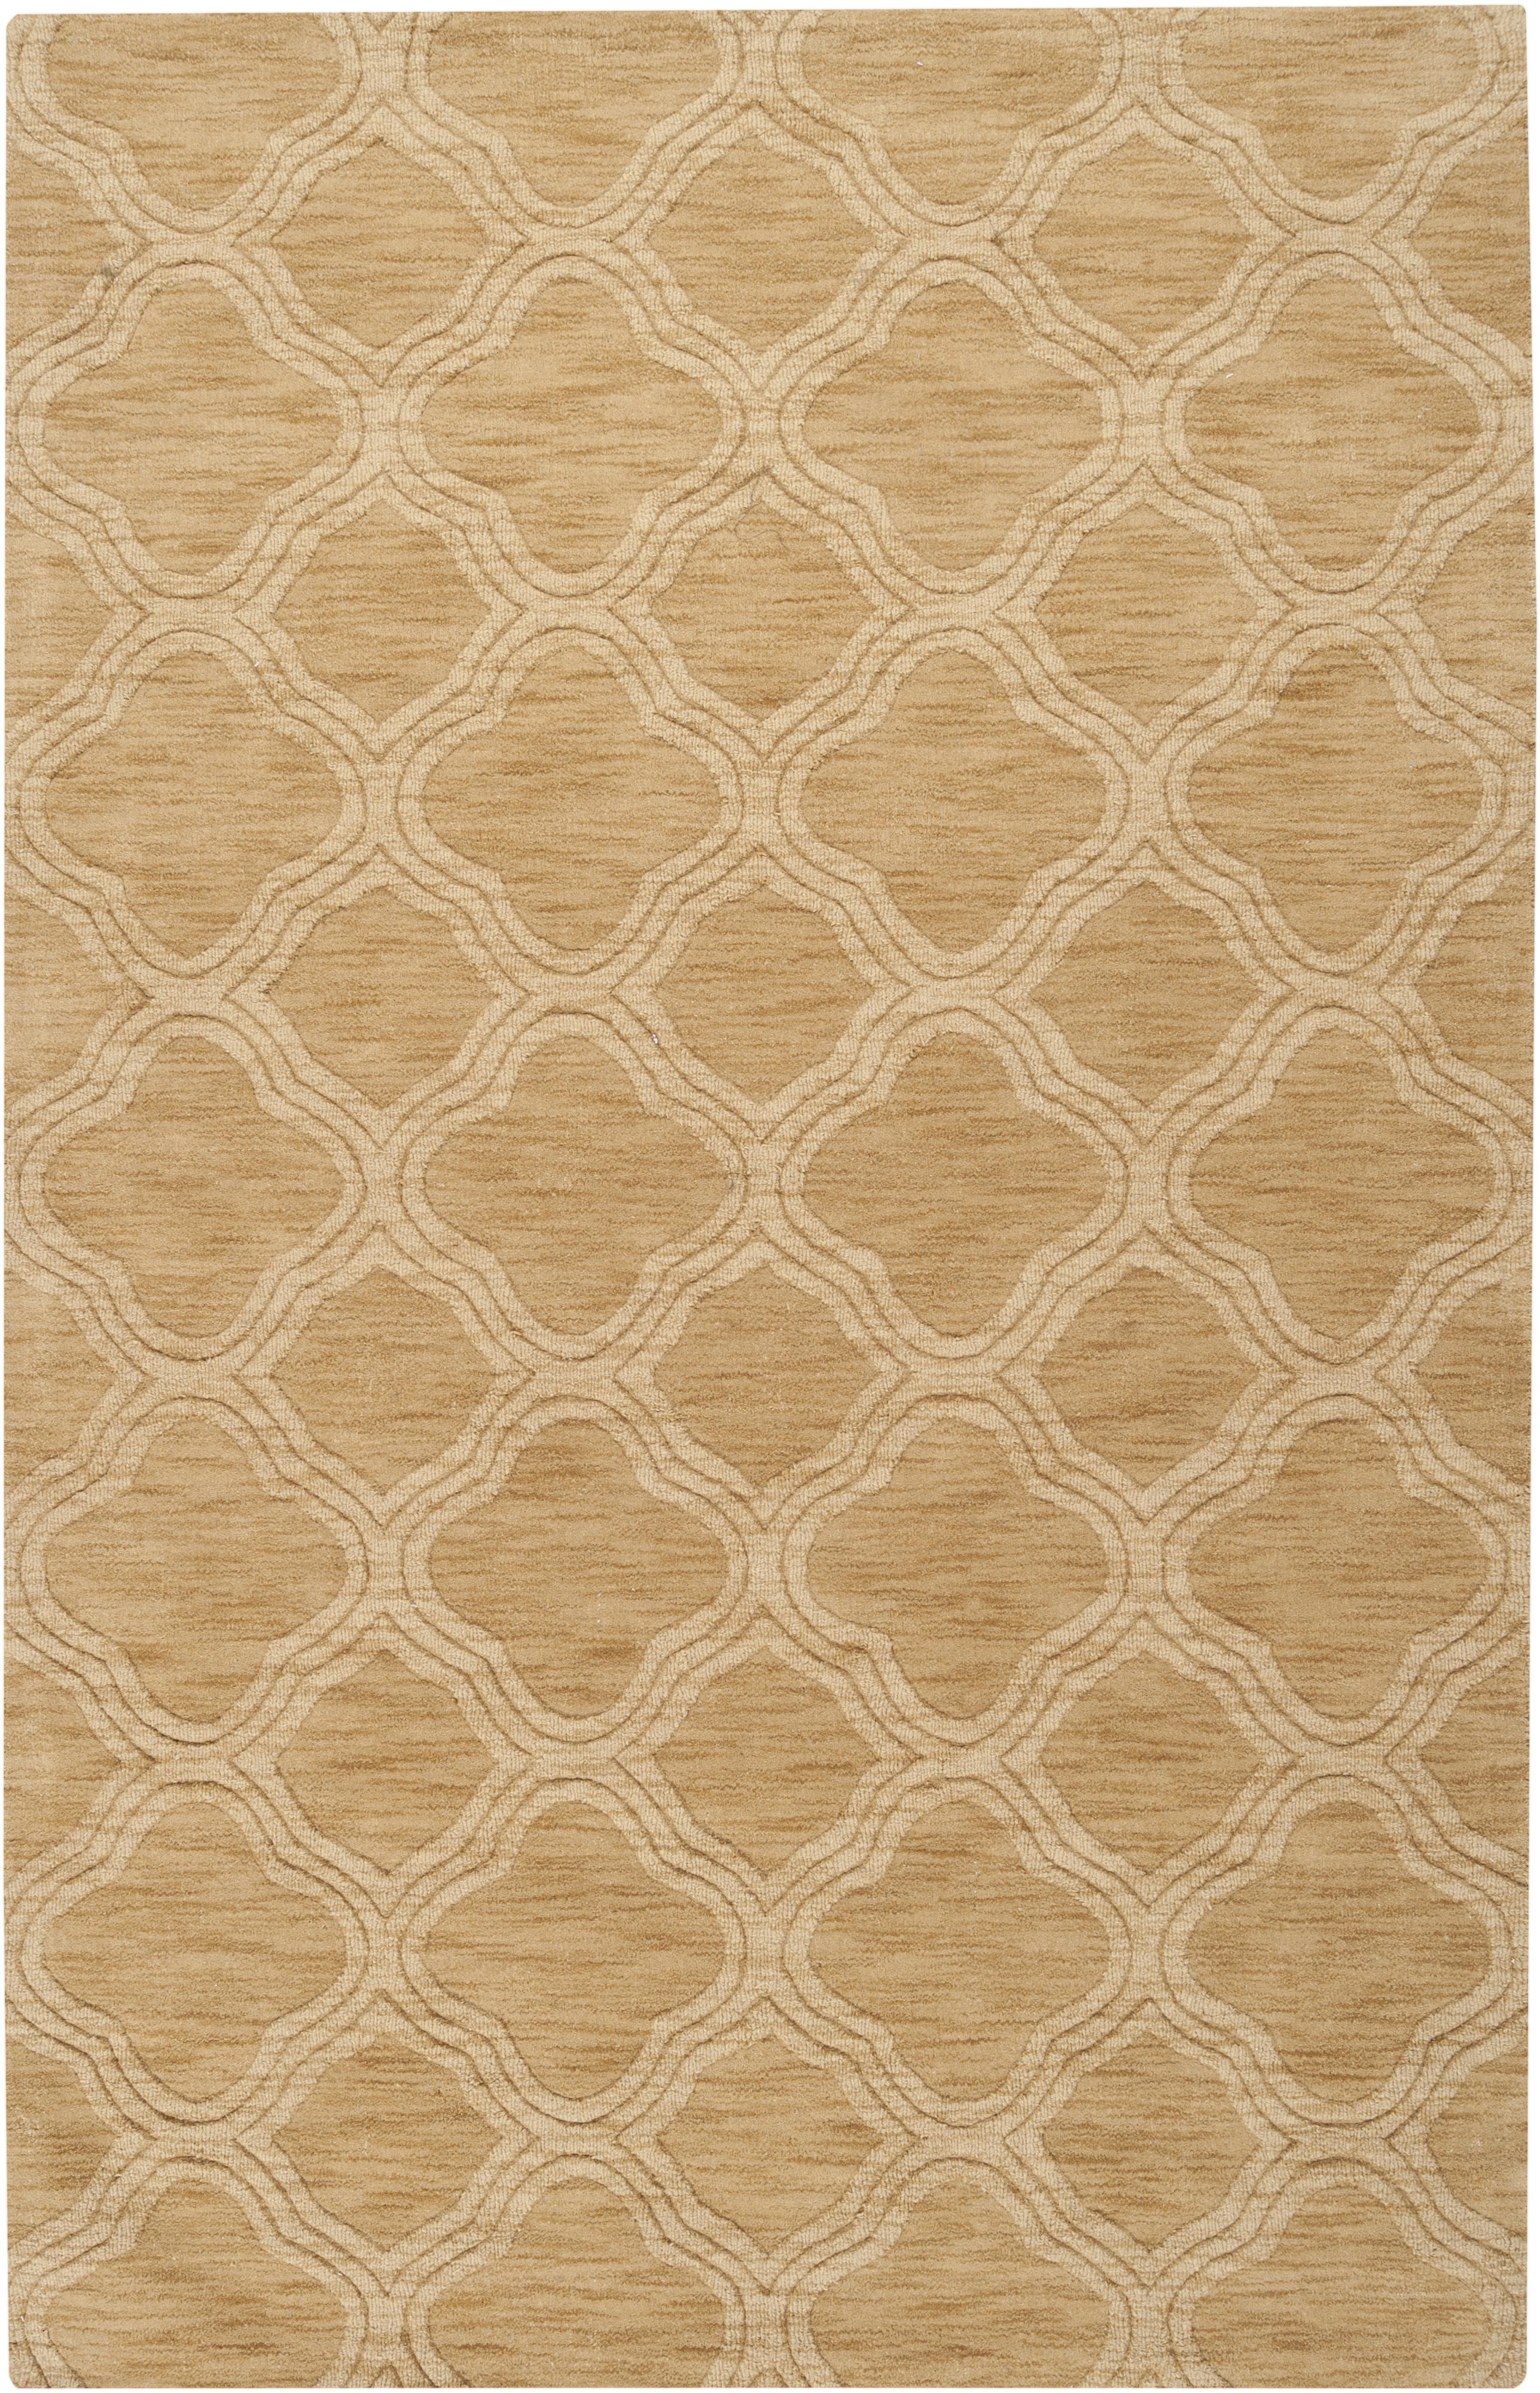 Surya Mystique 5' x 8' - Item Number: M418-58